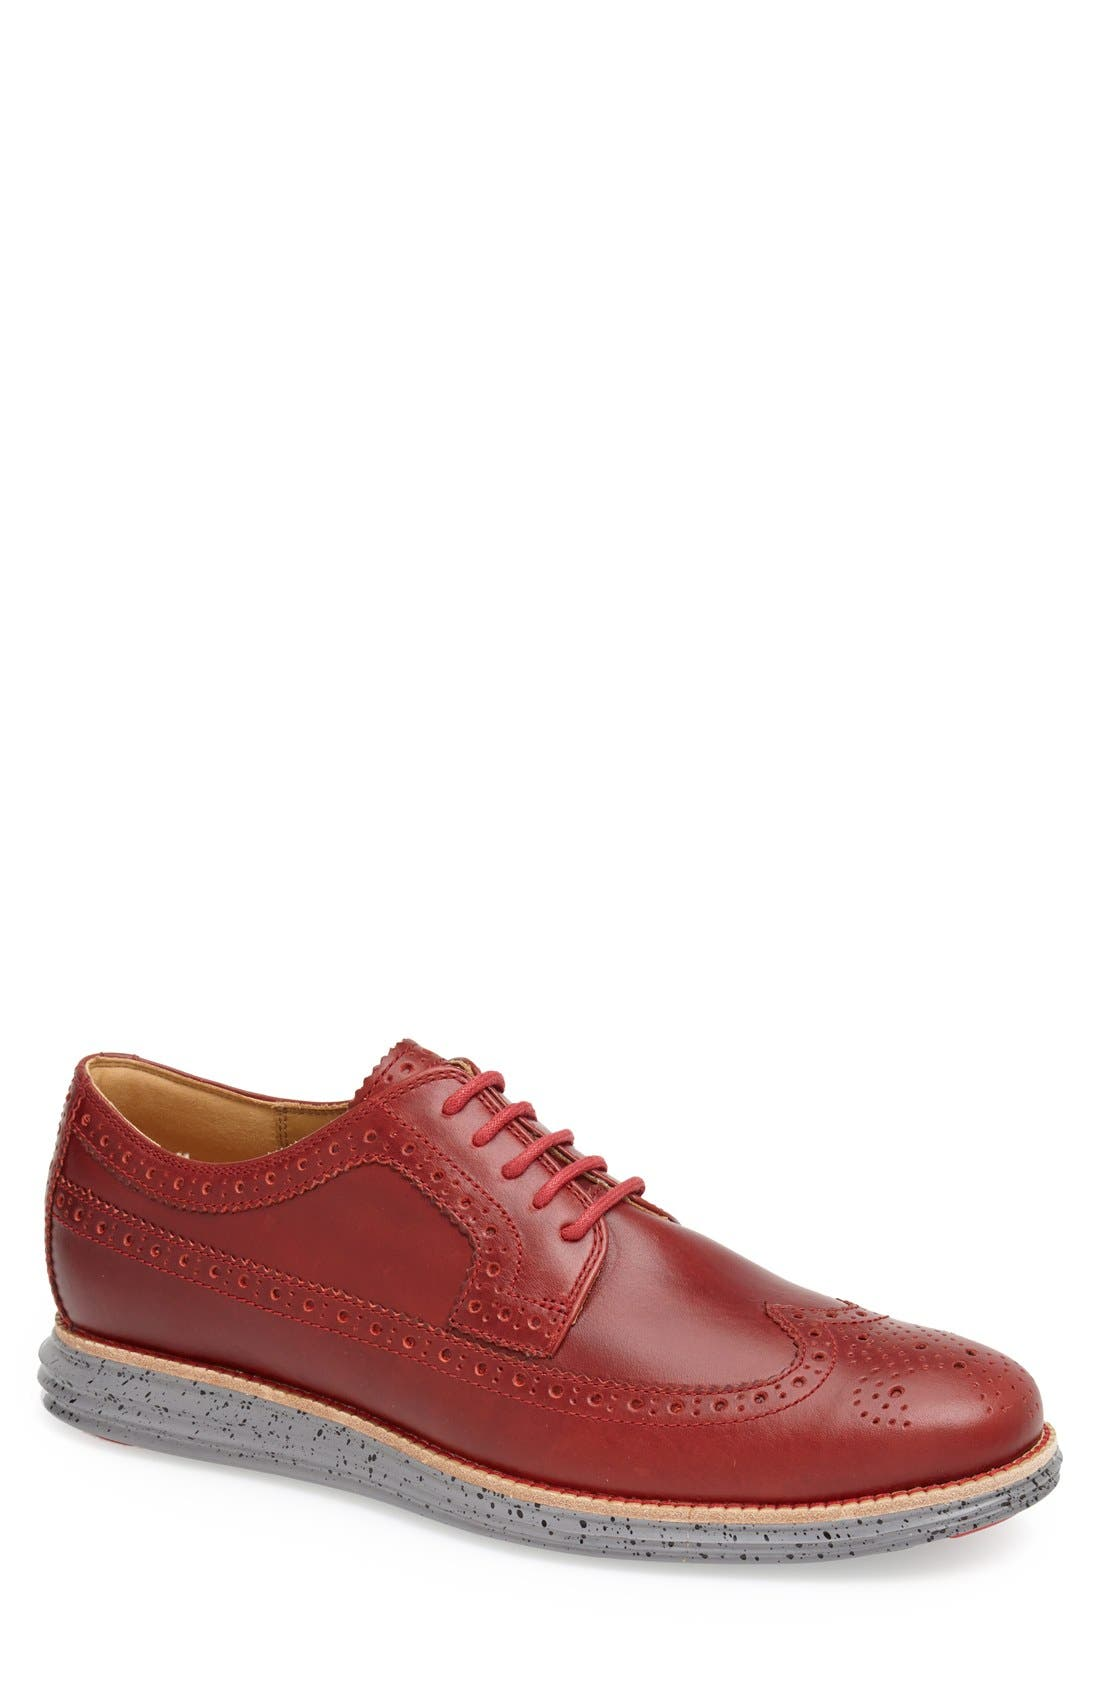 Alternate Image 1 Selected - Cole Haan 'LunarGrand' Longwing Derby (Men) (Nordstrom Exclusive)